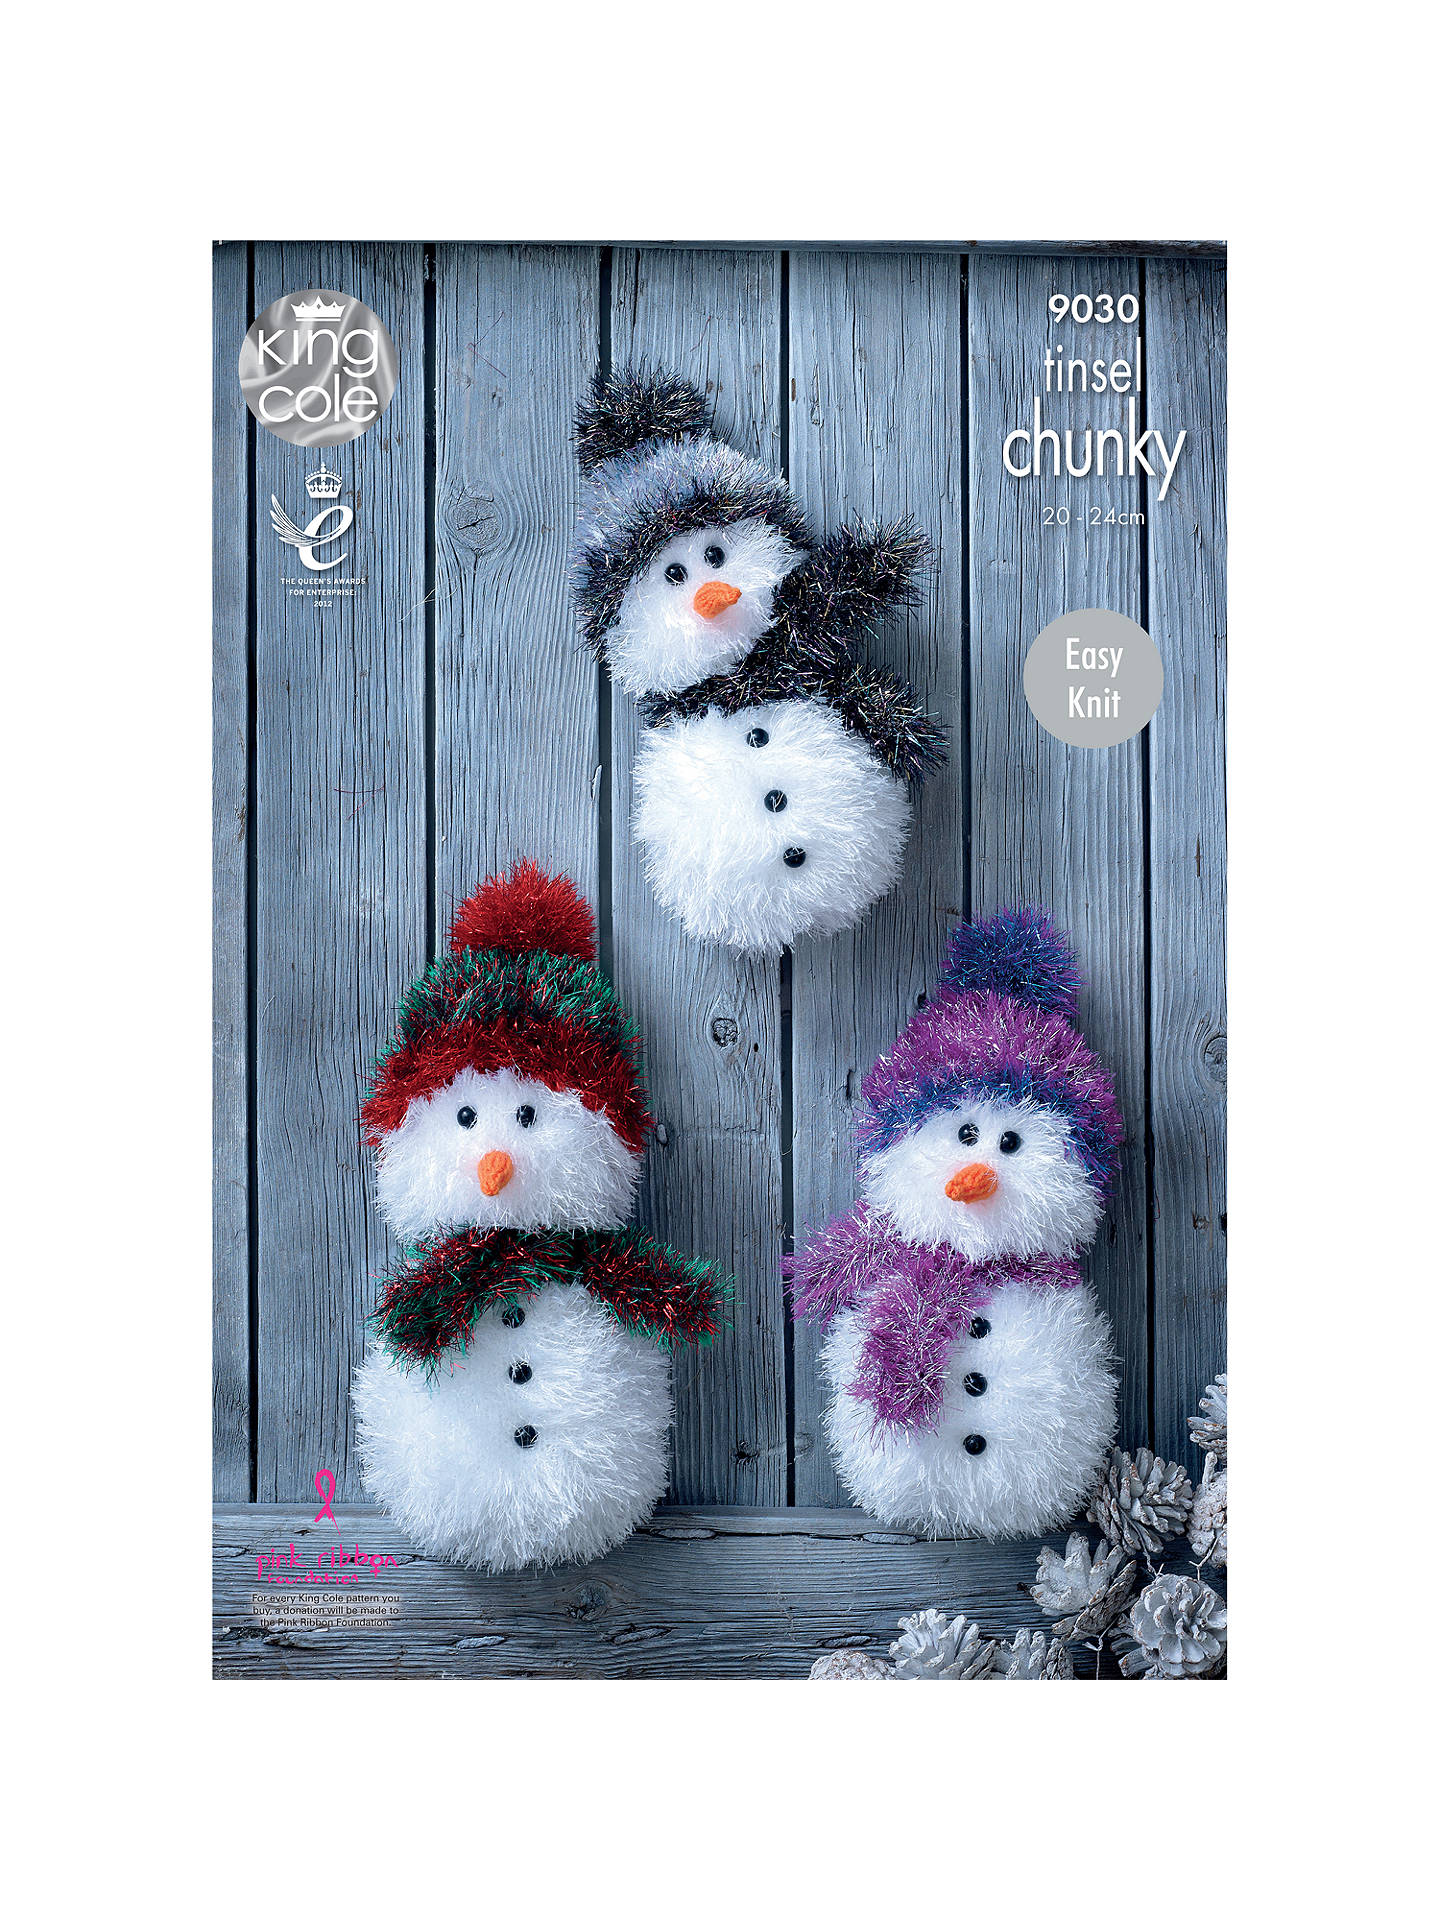 BuyKing Cole Tinsel Chunky & DK Snowman Soft Toy Knitting Pattern, 9030 Online at johnlewis.com